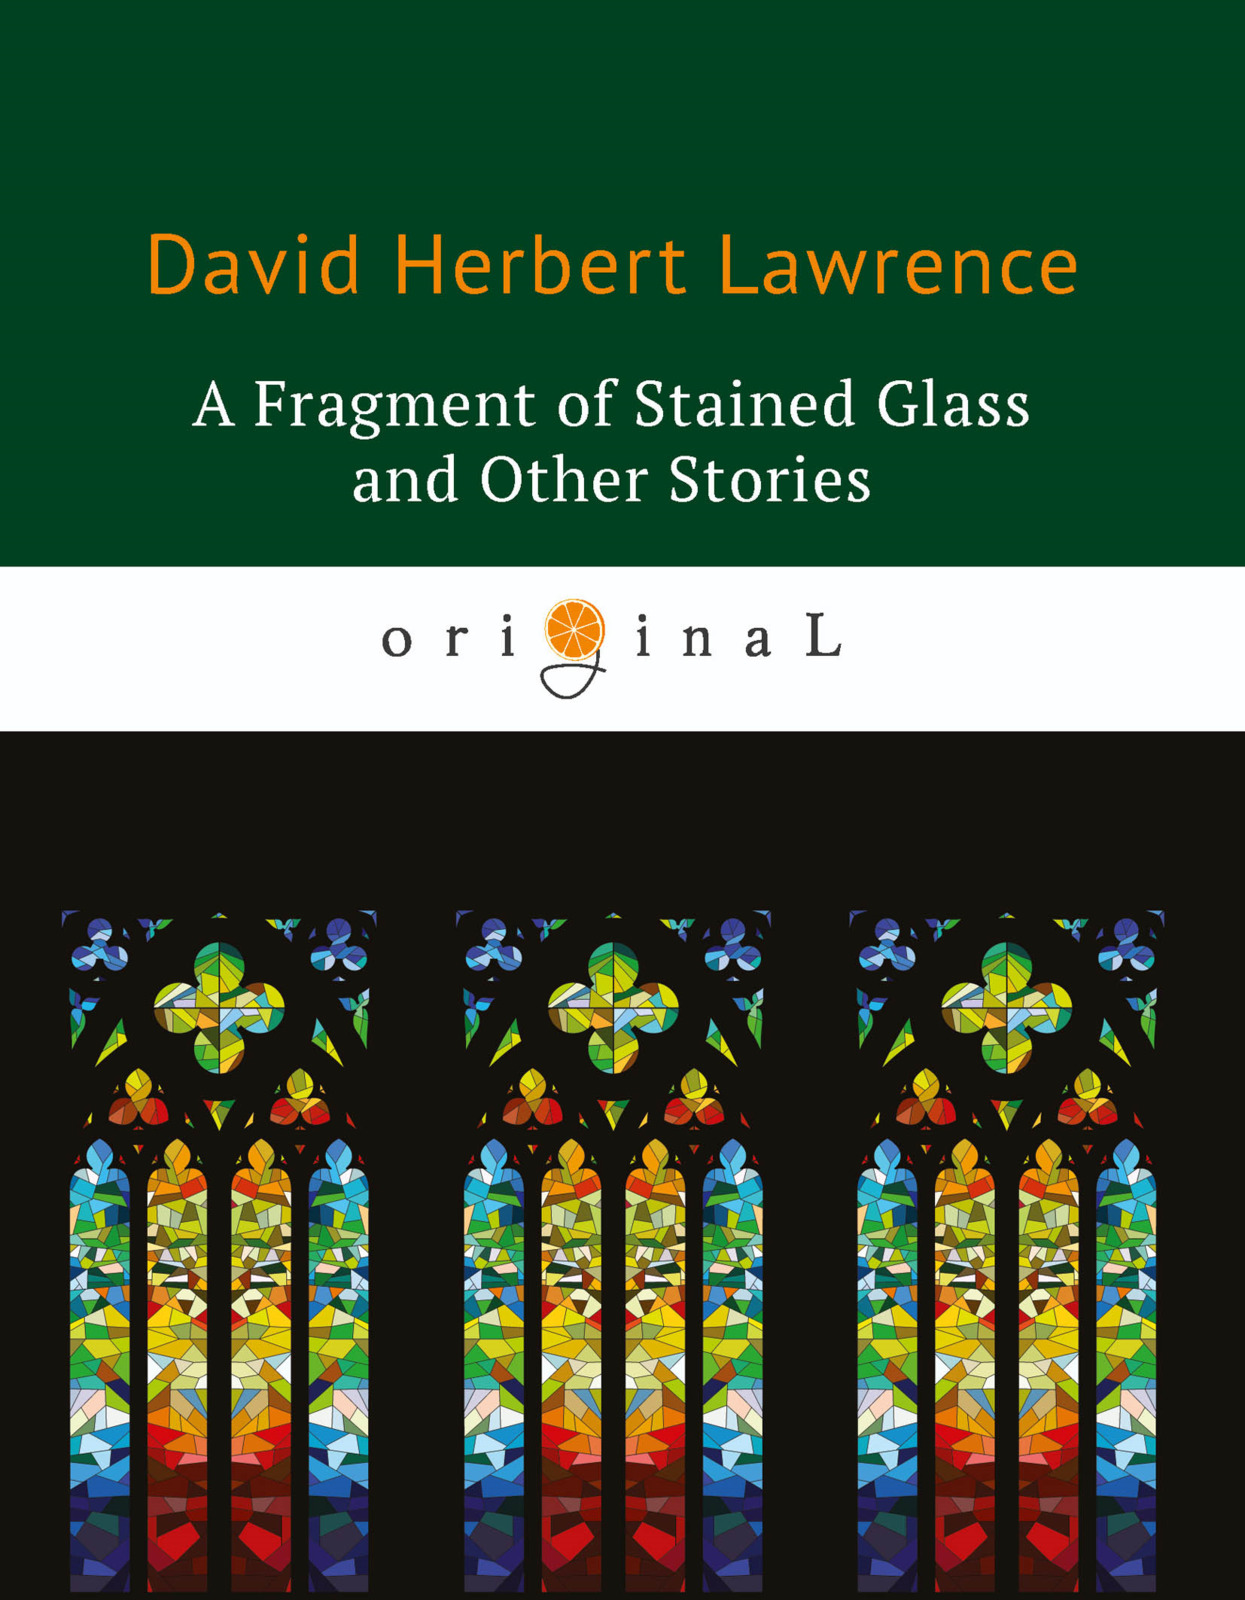 D. H. Lawrence A Fragment of Stained Glass and Other Stories